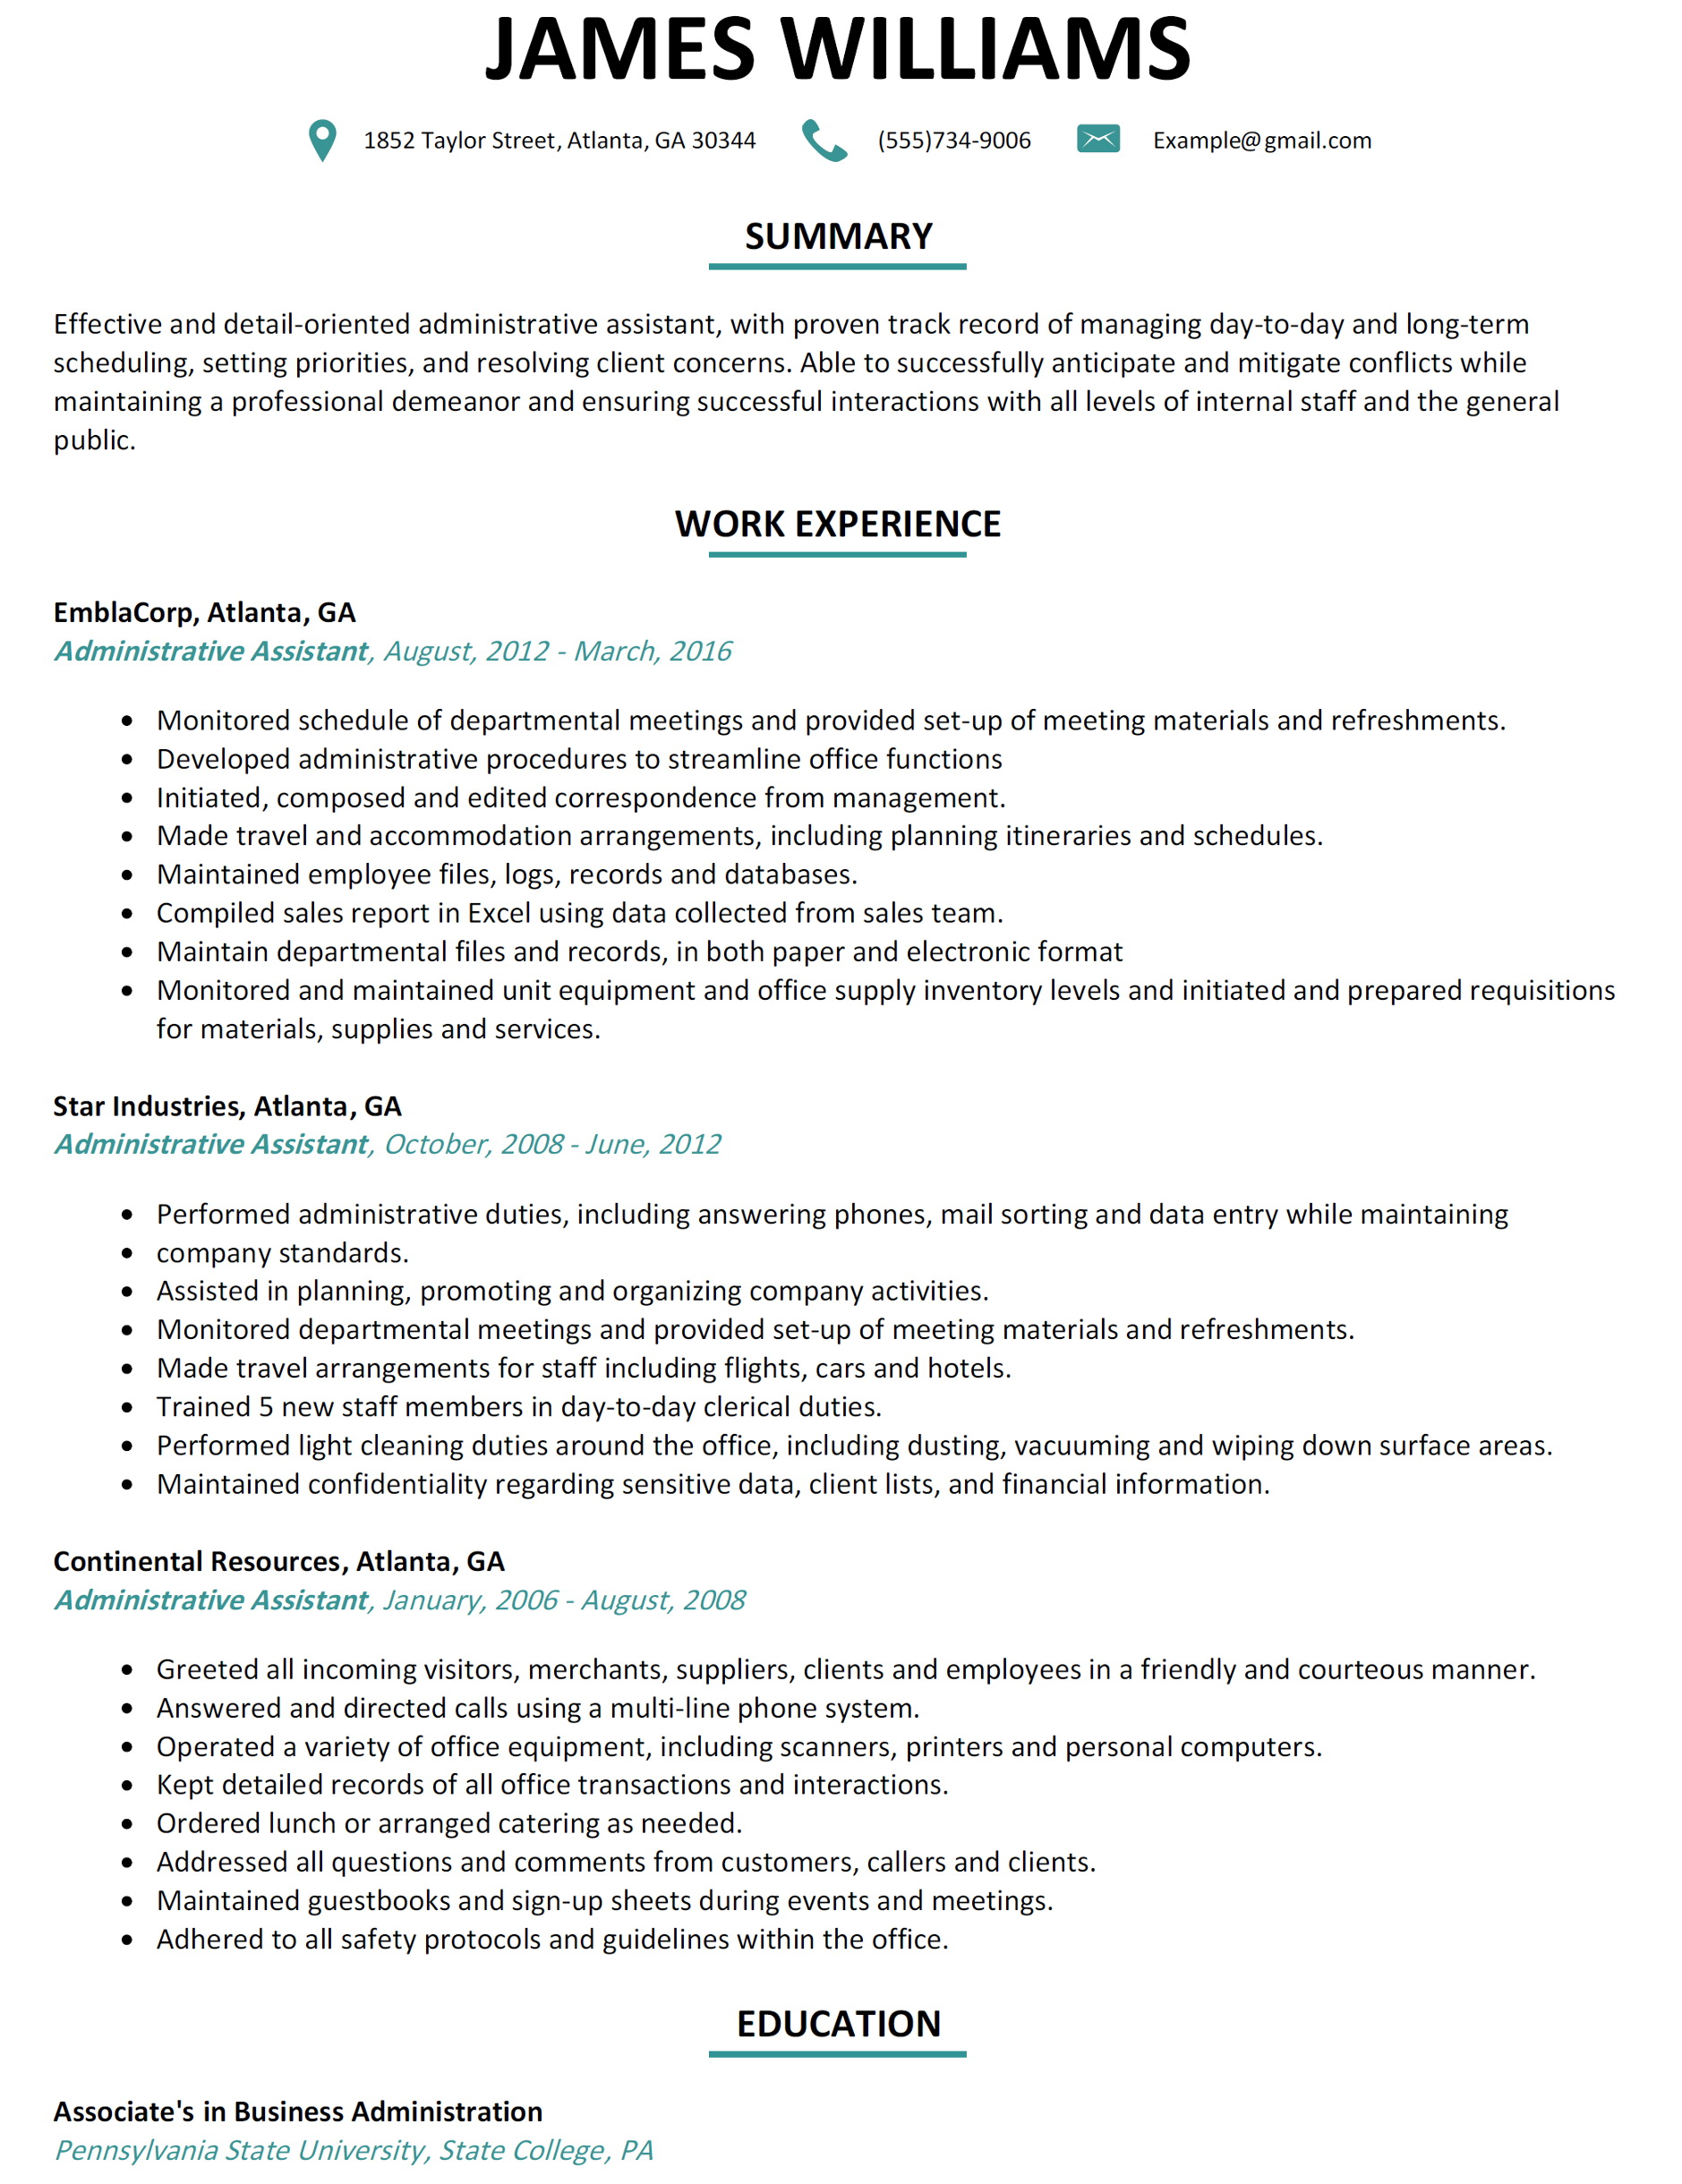 Sample Resume Templates Free Download